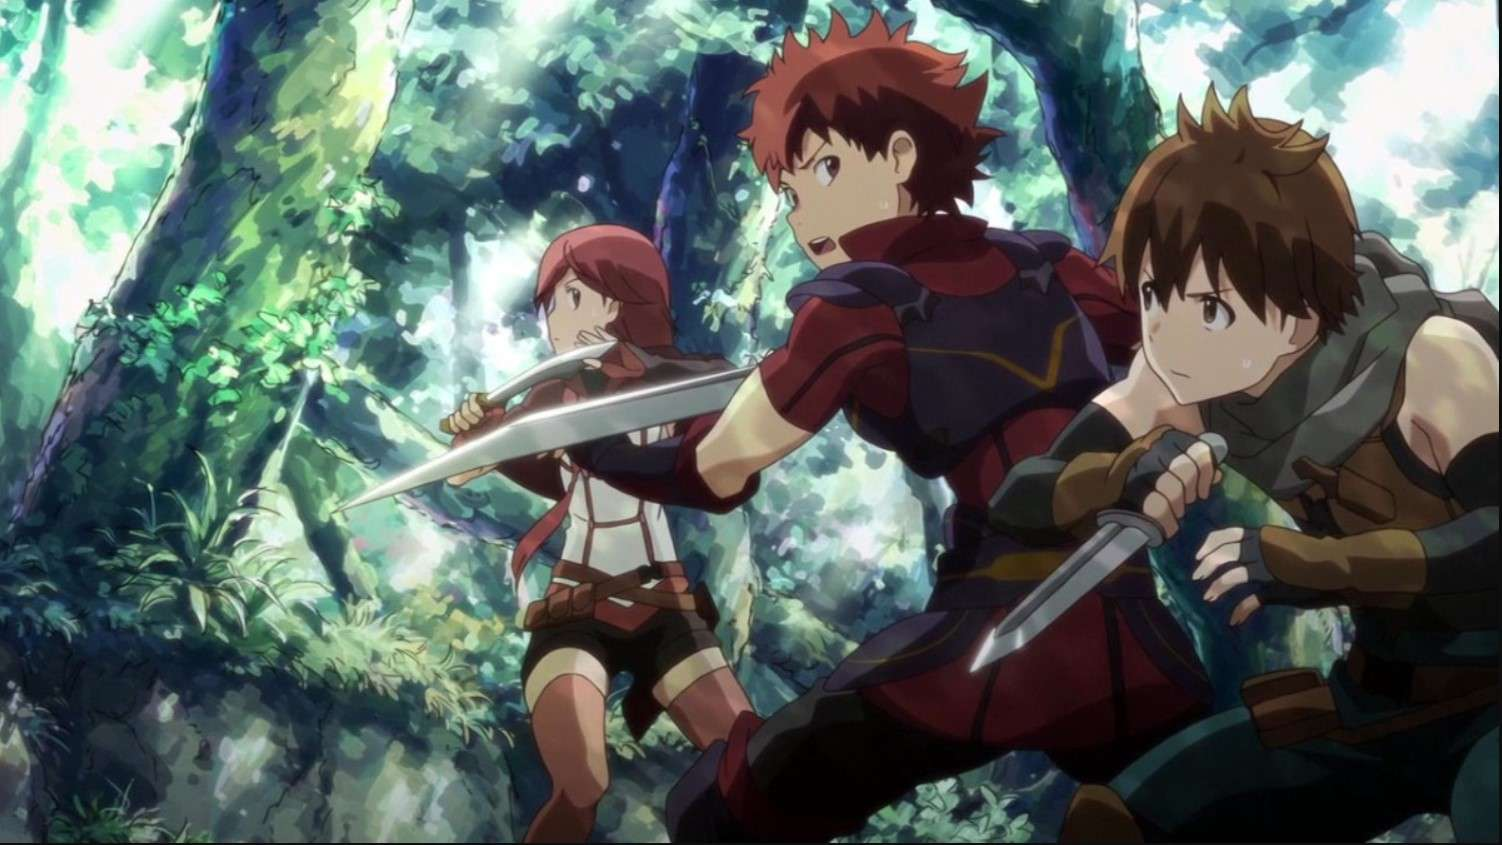 Grimgar: Ashes and Illusions- anime like overlord